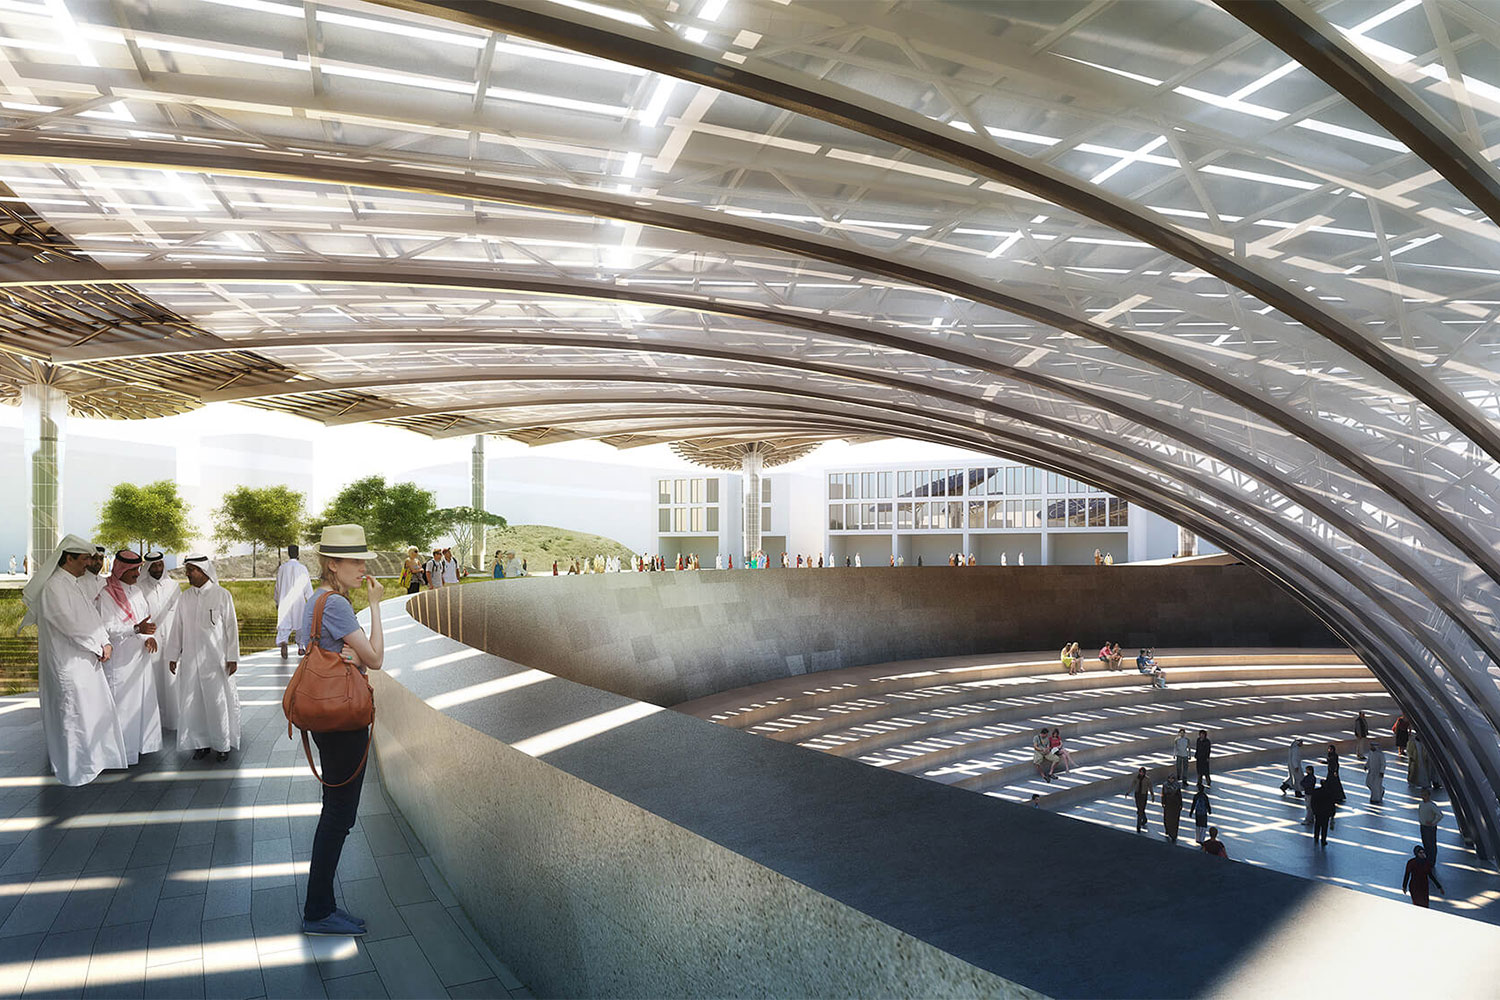 Engineering The Sustainability Pavilion At The Expo 2020